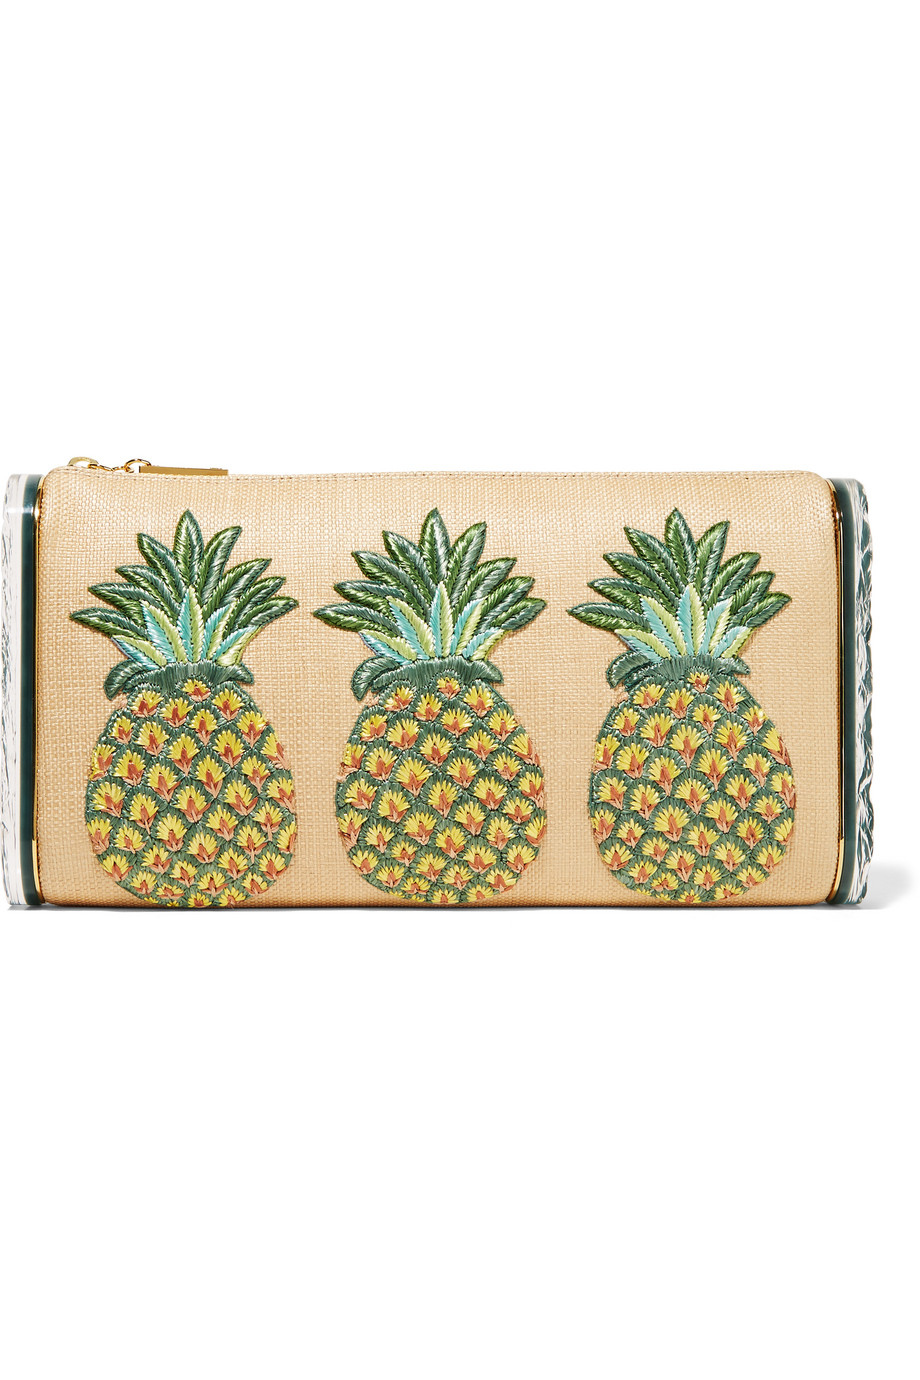 Edie Parker Jumbo Lara Pineapple Embroidered Raffia and Acrylic Box Clutch, Beige, Women's